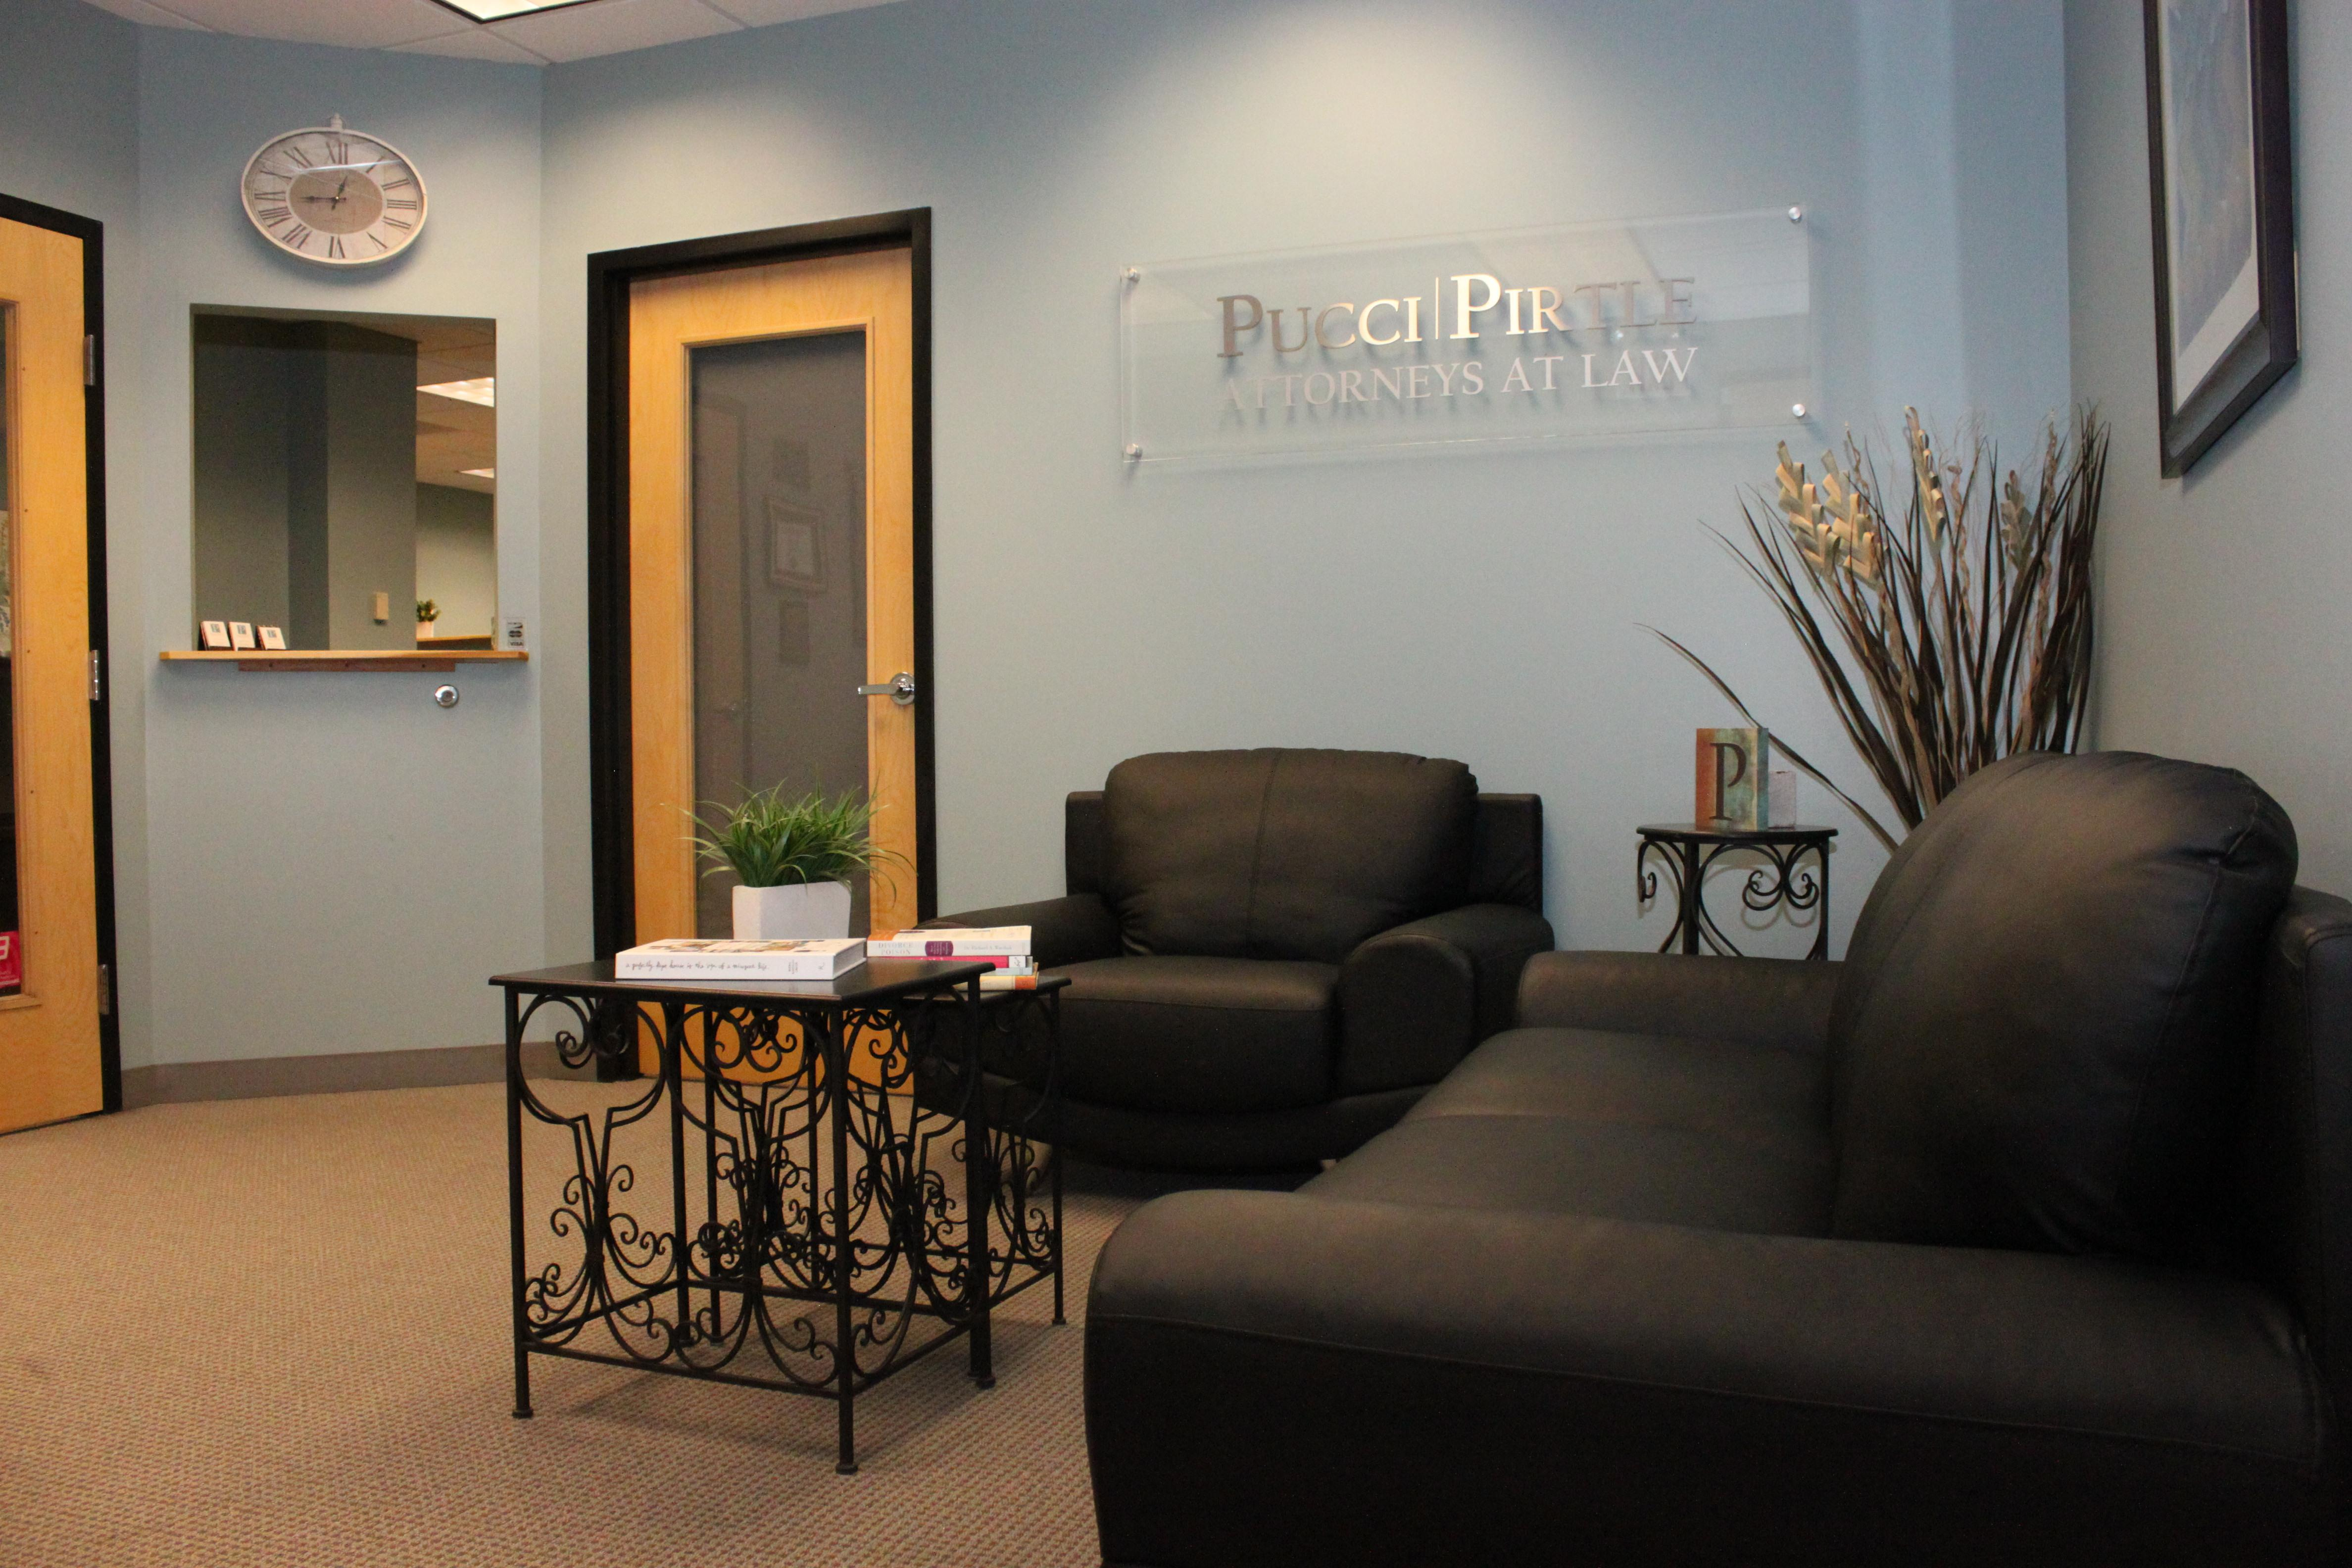 Pucci | Pirtle, LLC - Office Suite 130